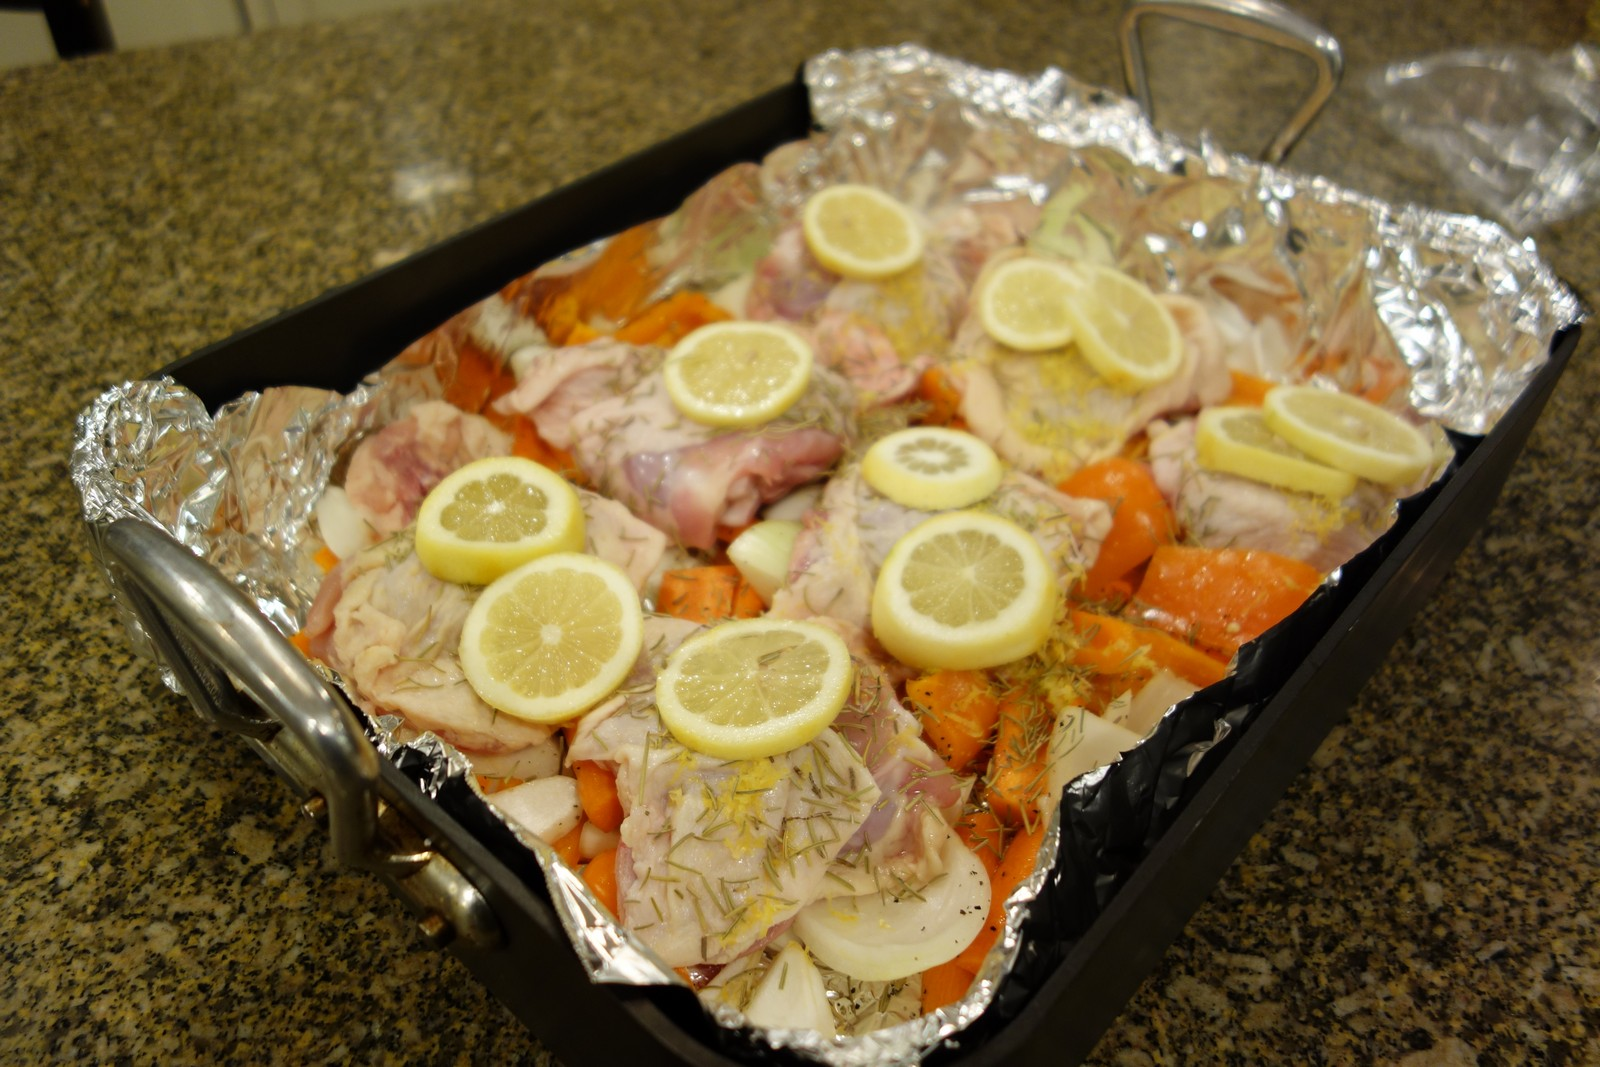 Sprinkle rosemary on top. then squeeze lemons over all of it, and place lemon slices on top.